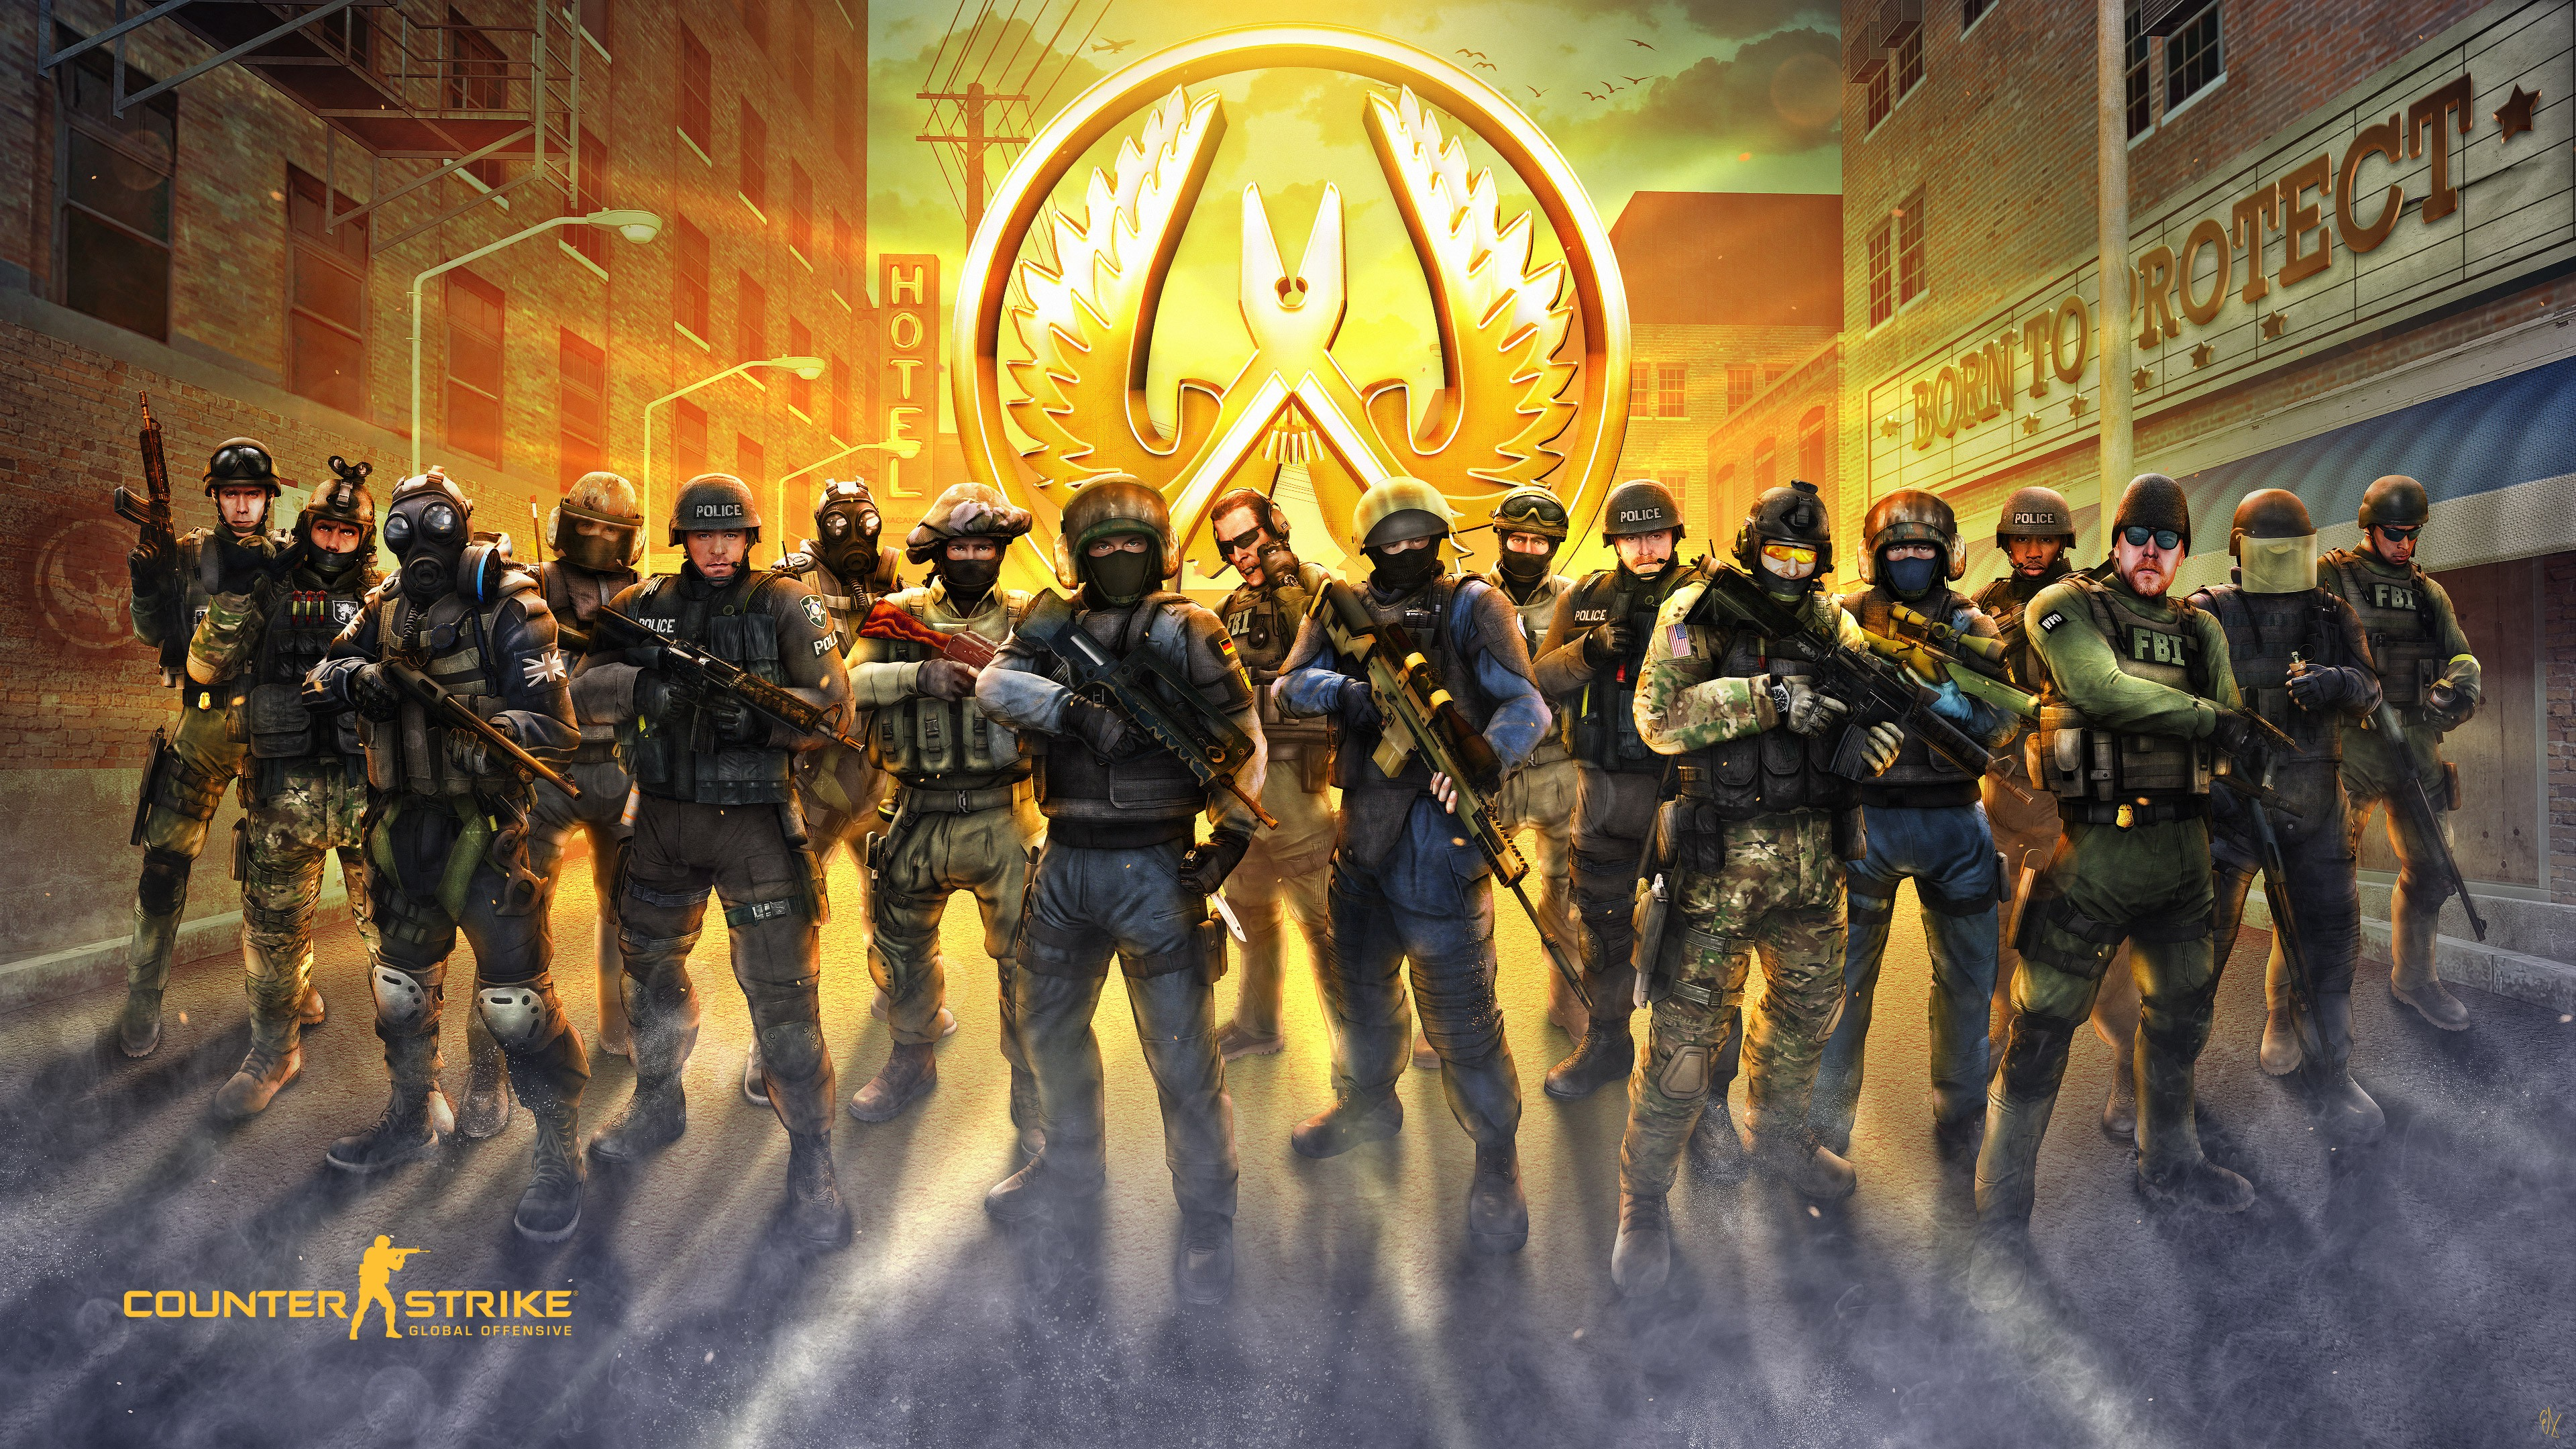 Wallpaper Counter-Strike: Global Offensive, 4k, Poster